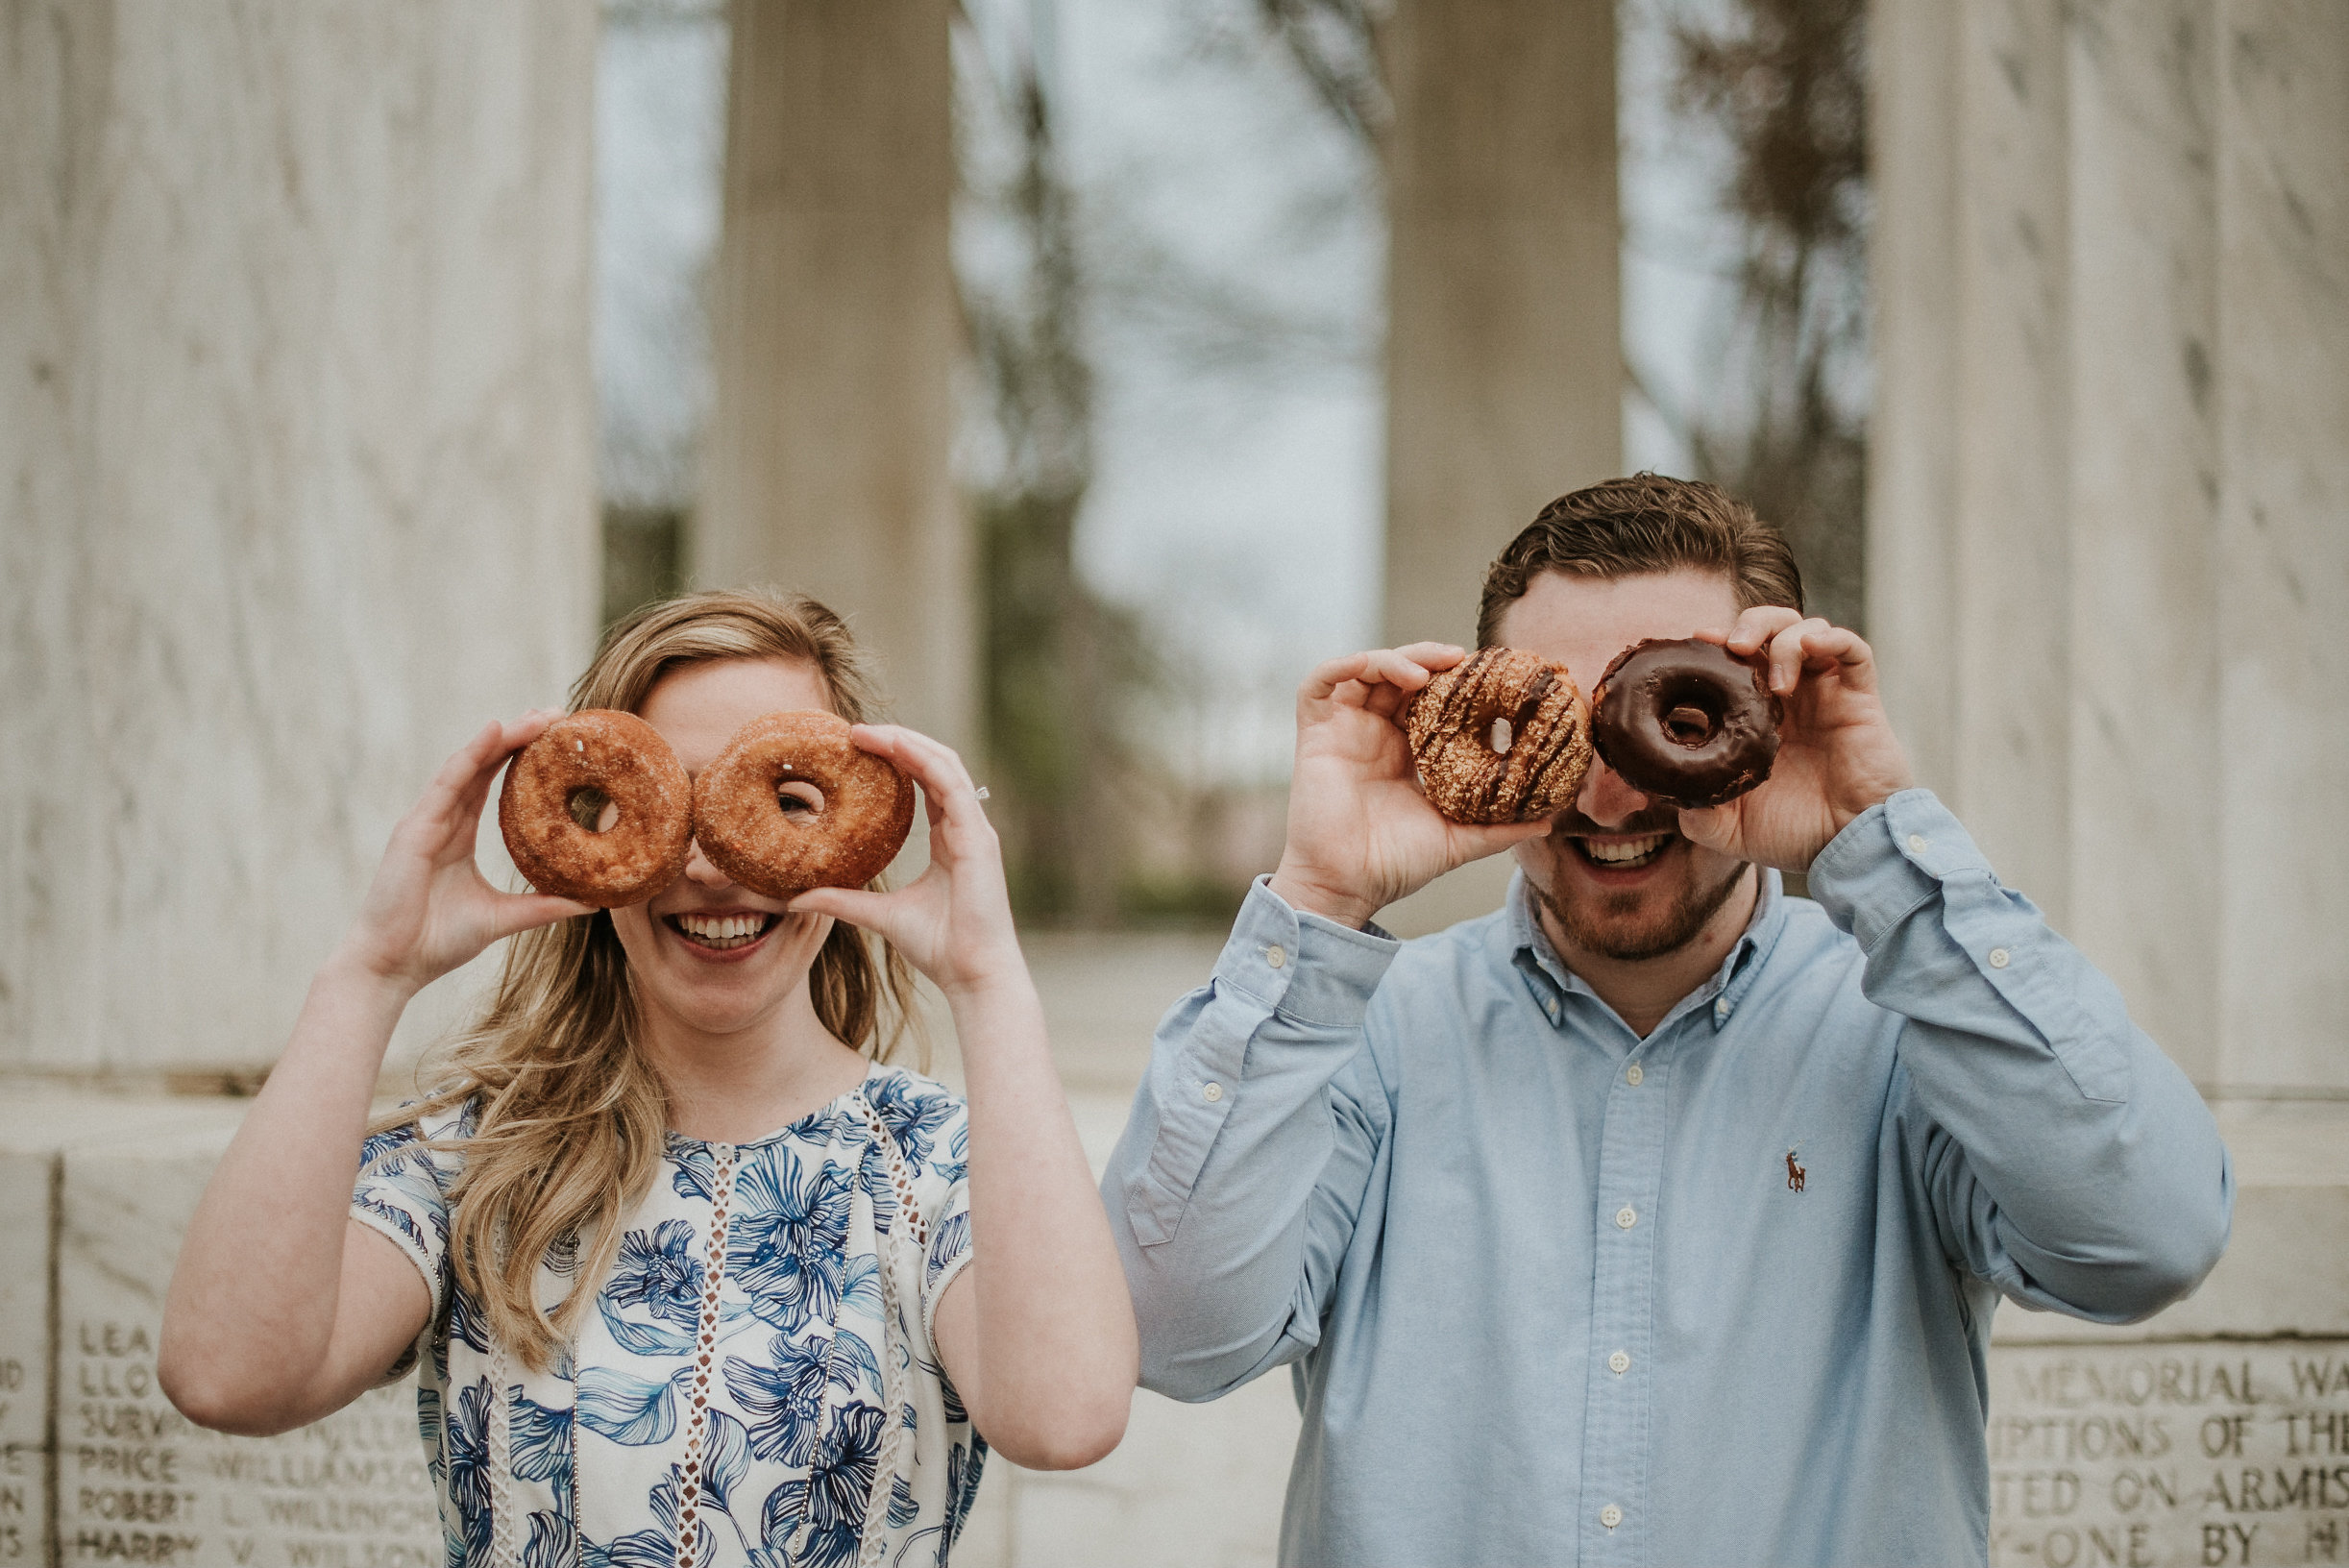 Silly couple with donuts